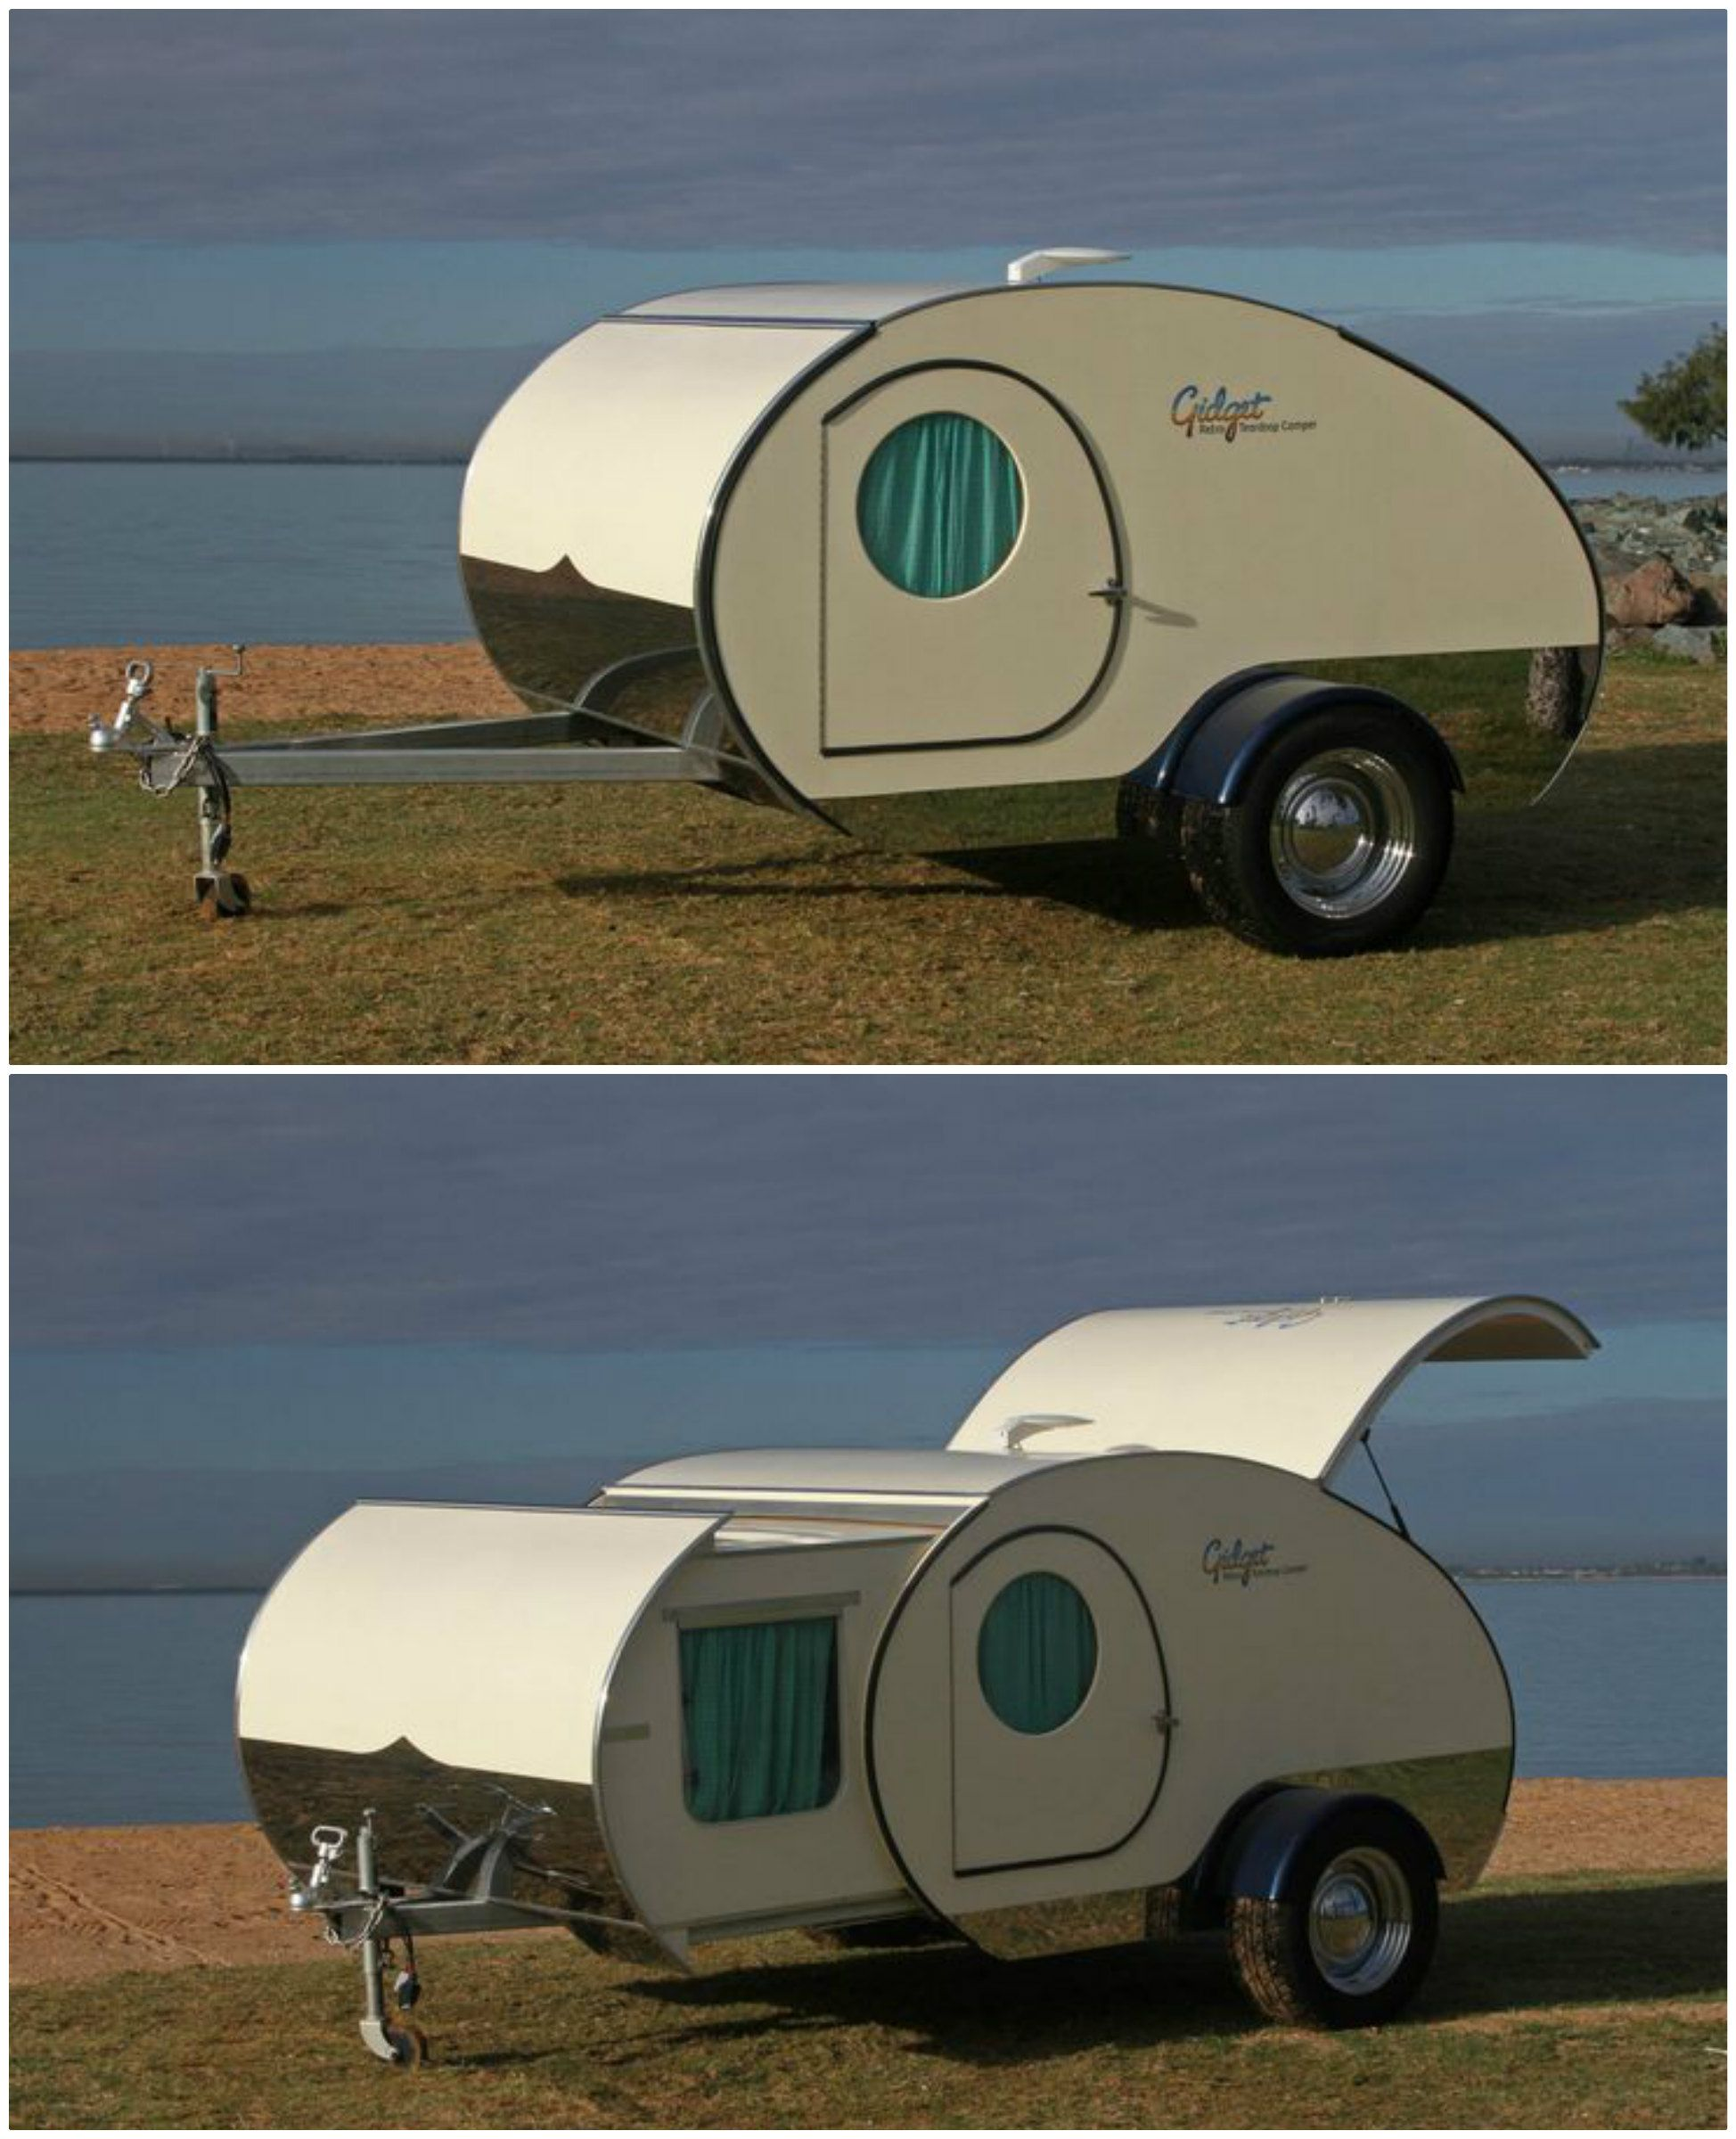 Posted in retro vintage tagged classic cars teardrop caravan vintage - The Gidget Retro Teardrop Camper Almost Doubles Its Size With A Simple Slide Out Action